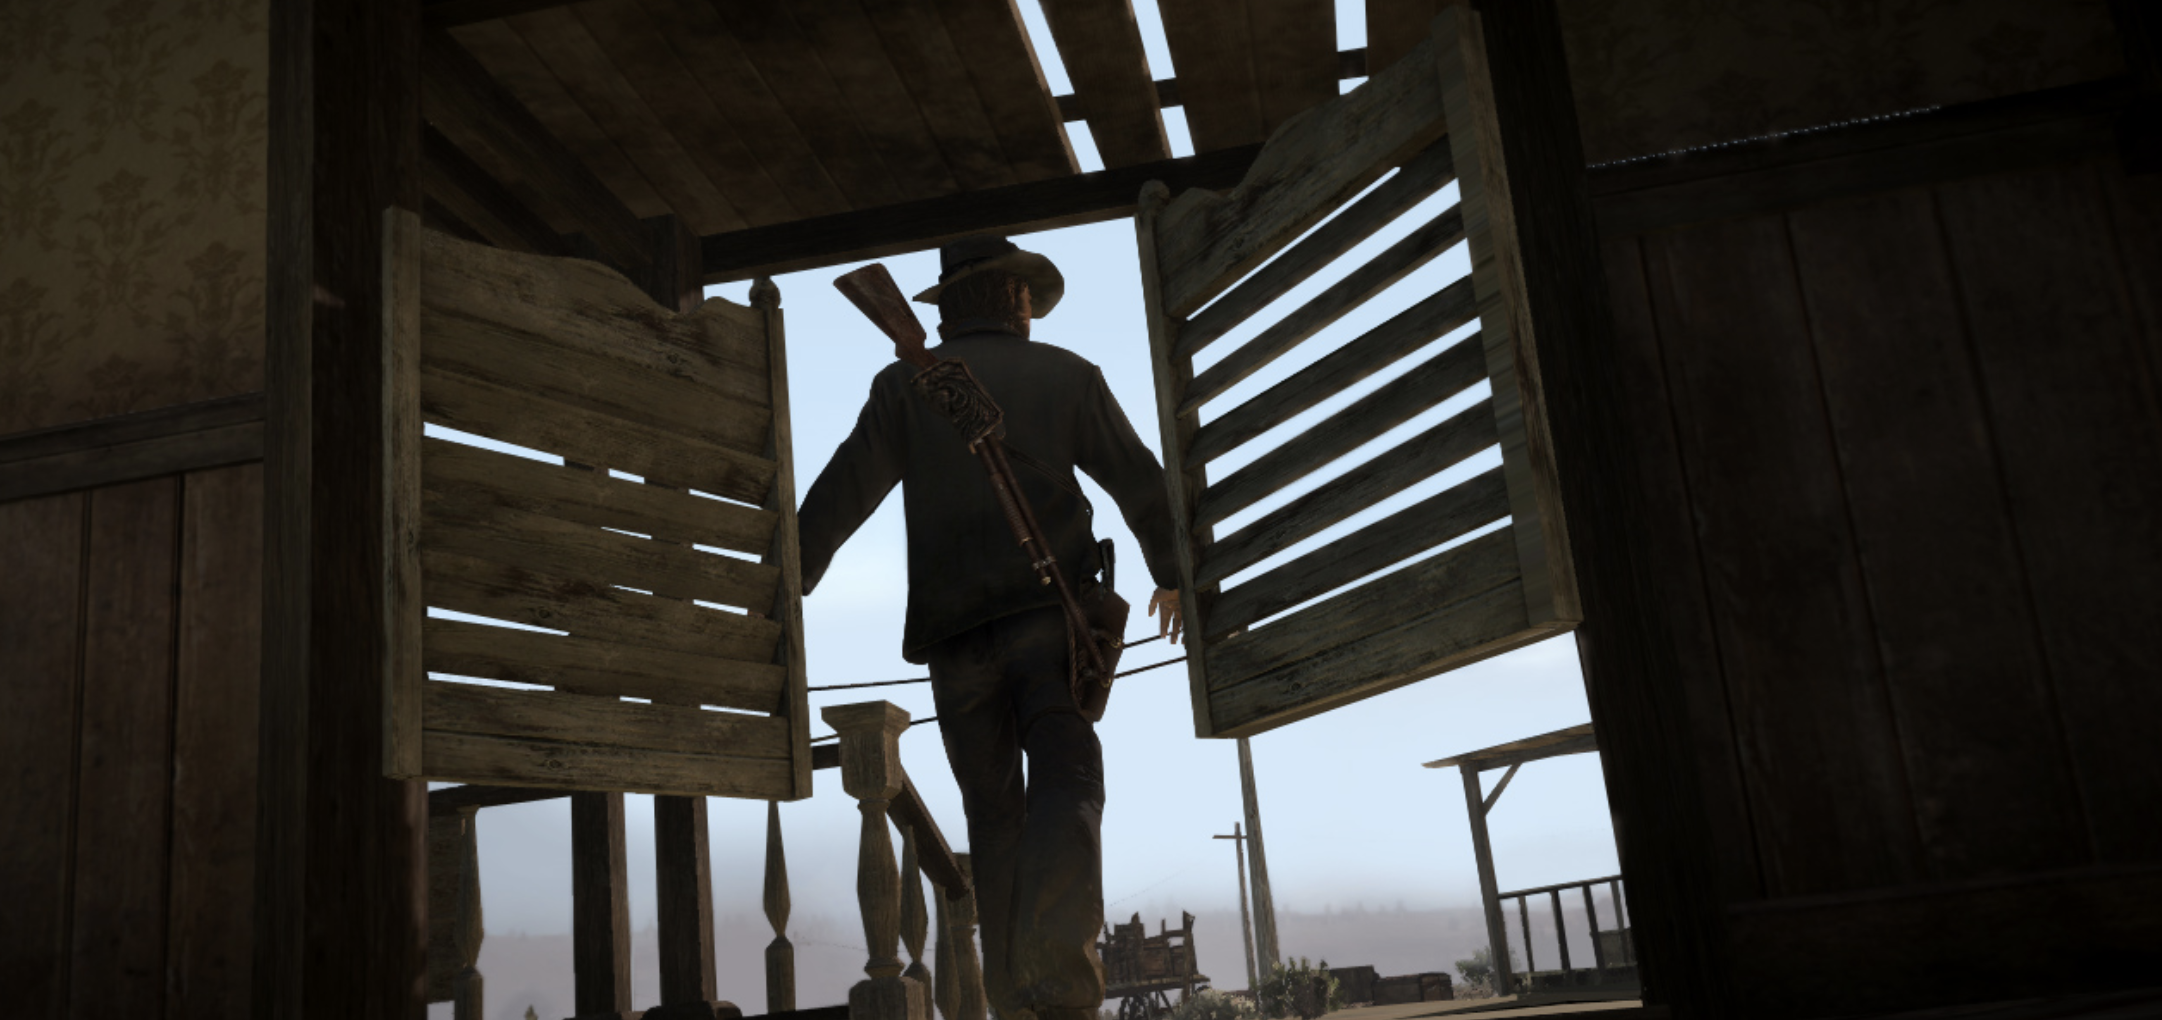 Red Dead Redemption Gameplay screengrab. John Marston third person pov